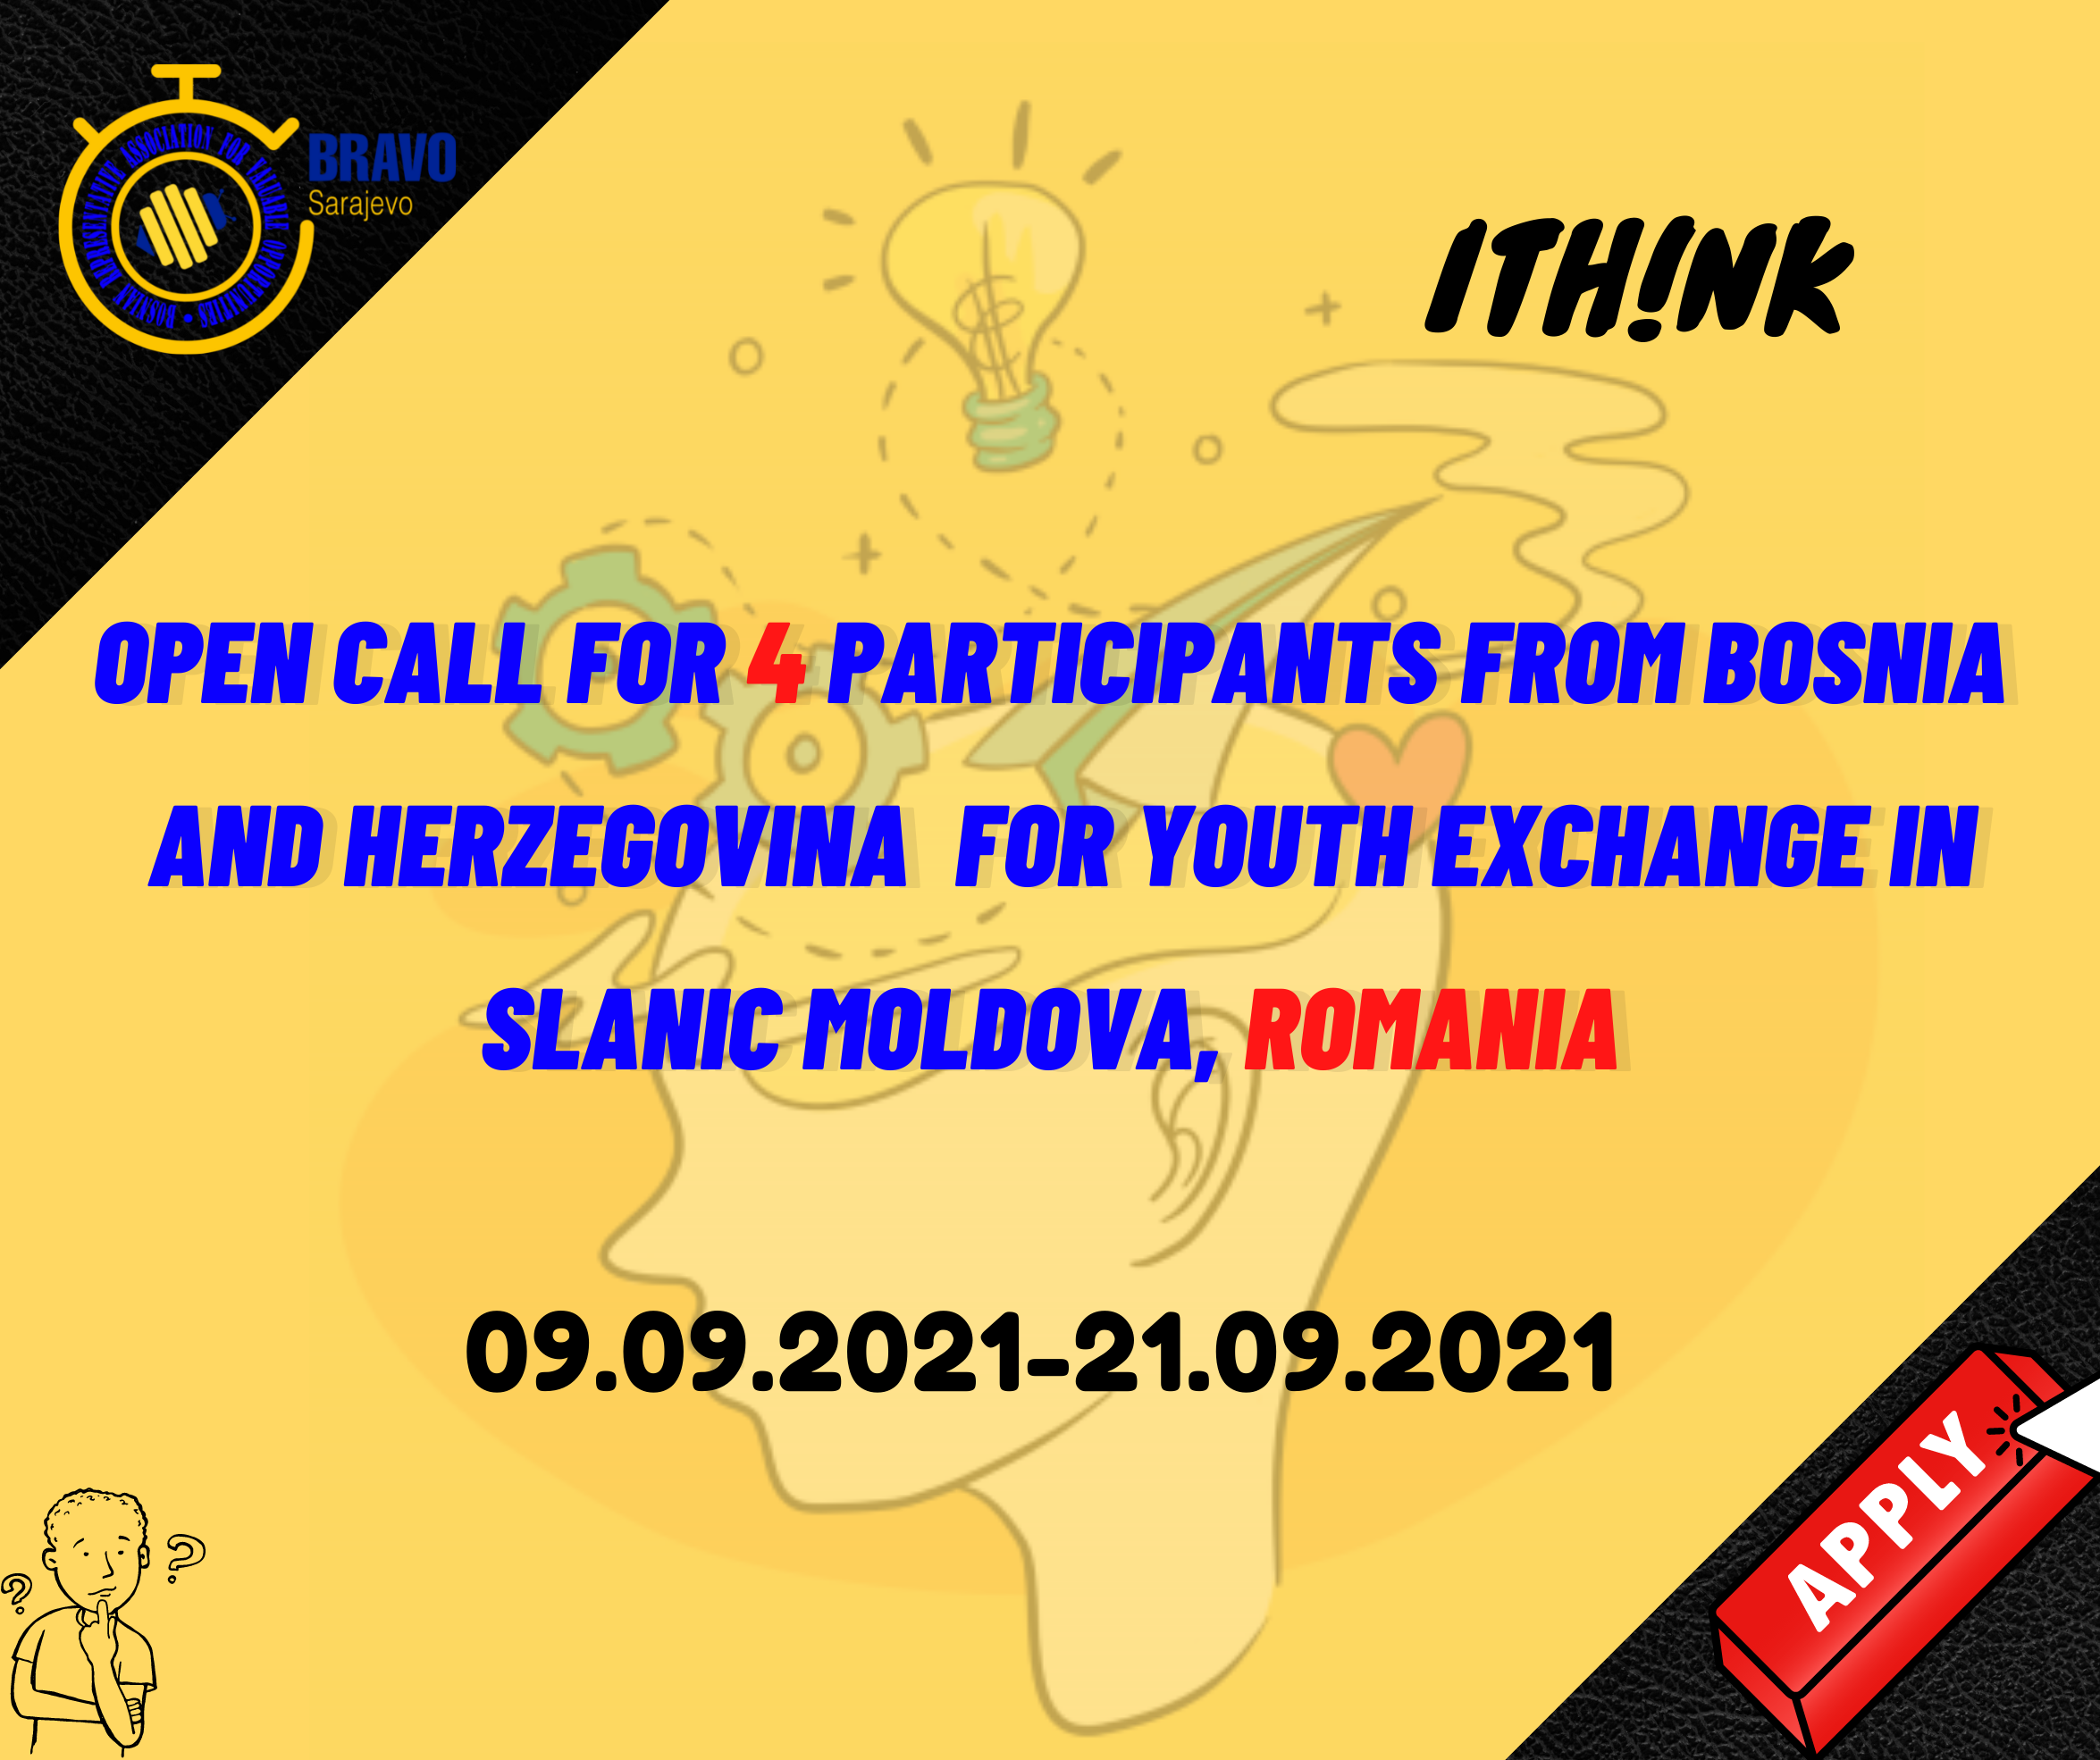 Open Call for 4 Participants from Bosnia and Herzegovina for Youth Exchange in Slanic Moldova, Romania